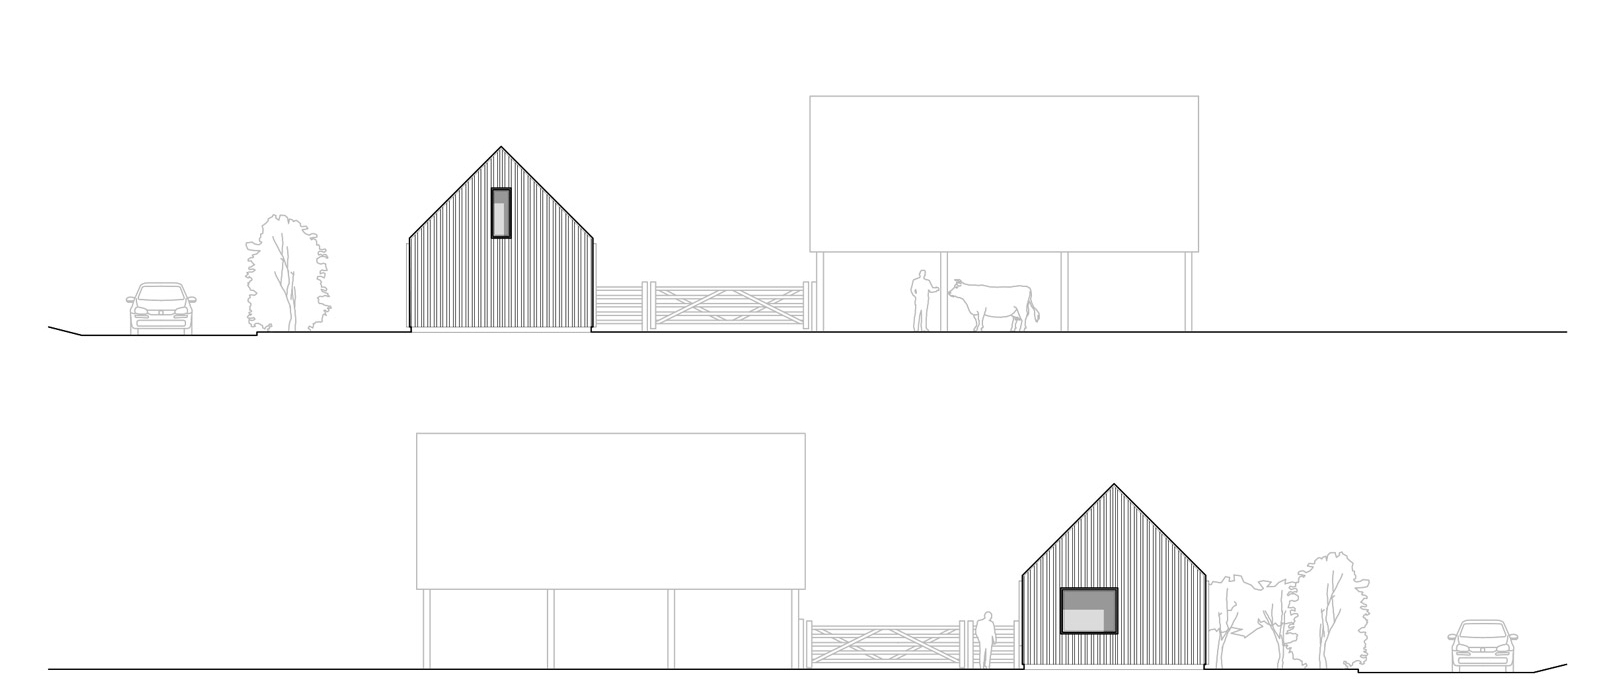 gyd architecture | elevations